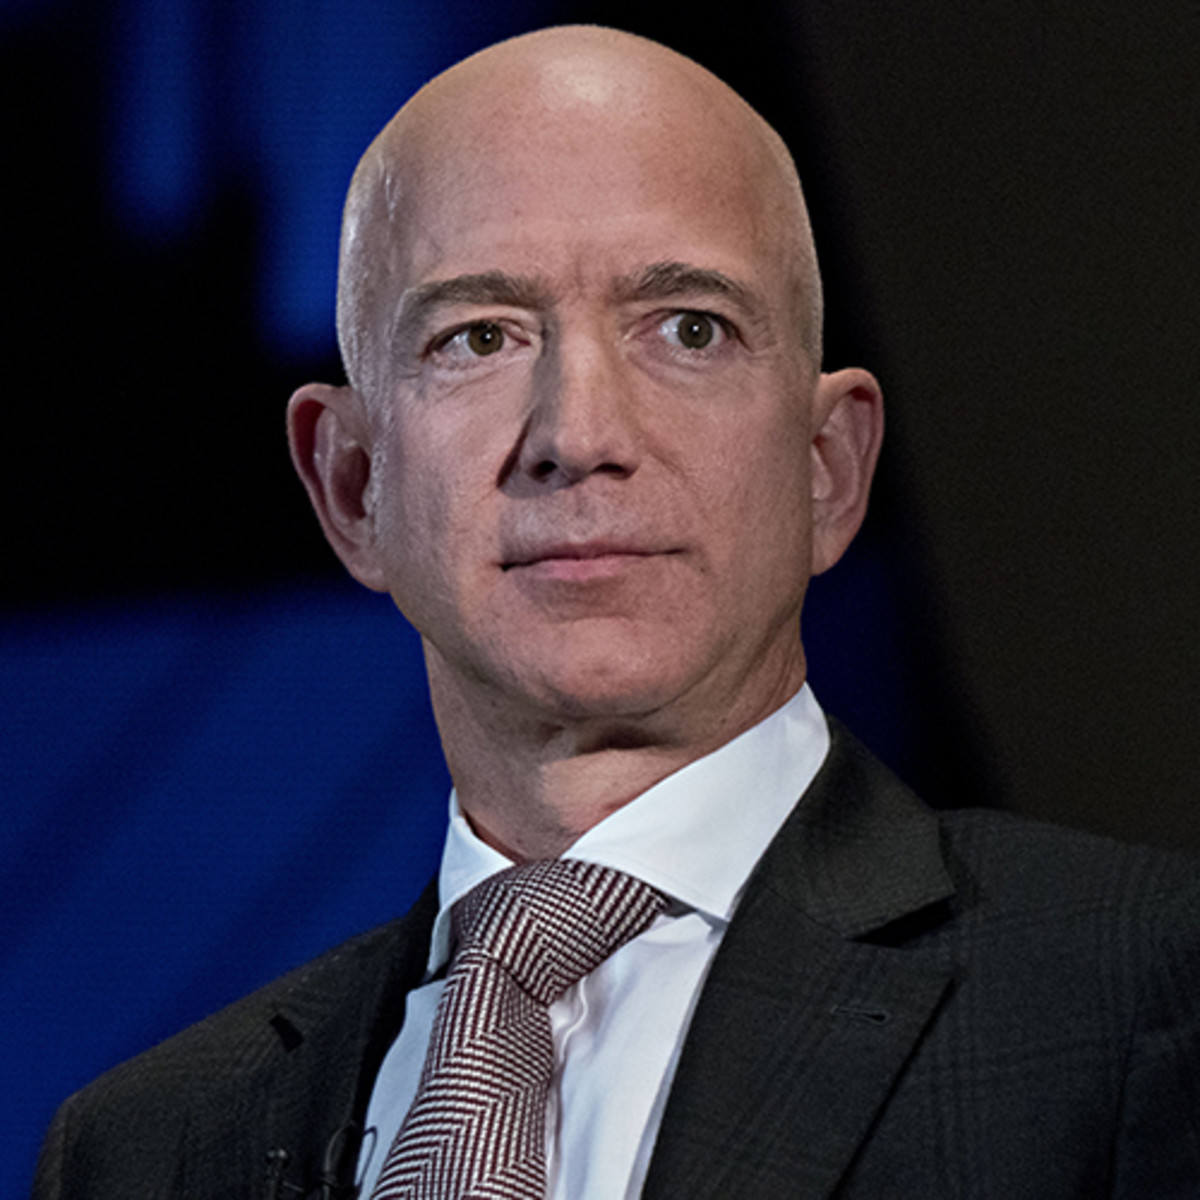 Amazon's Jeff Bezos Admits Not Enough Masks For Staff, Praises Workers – Deadline